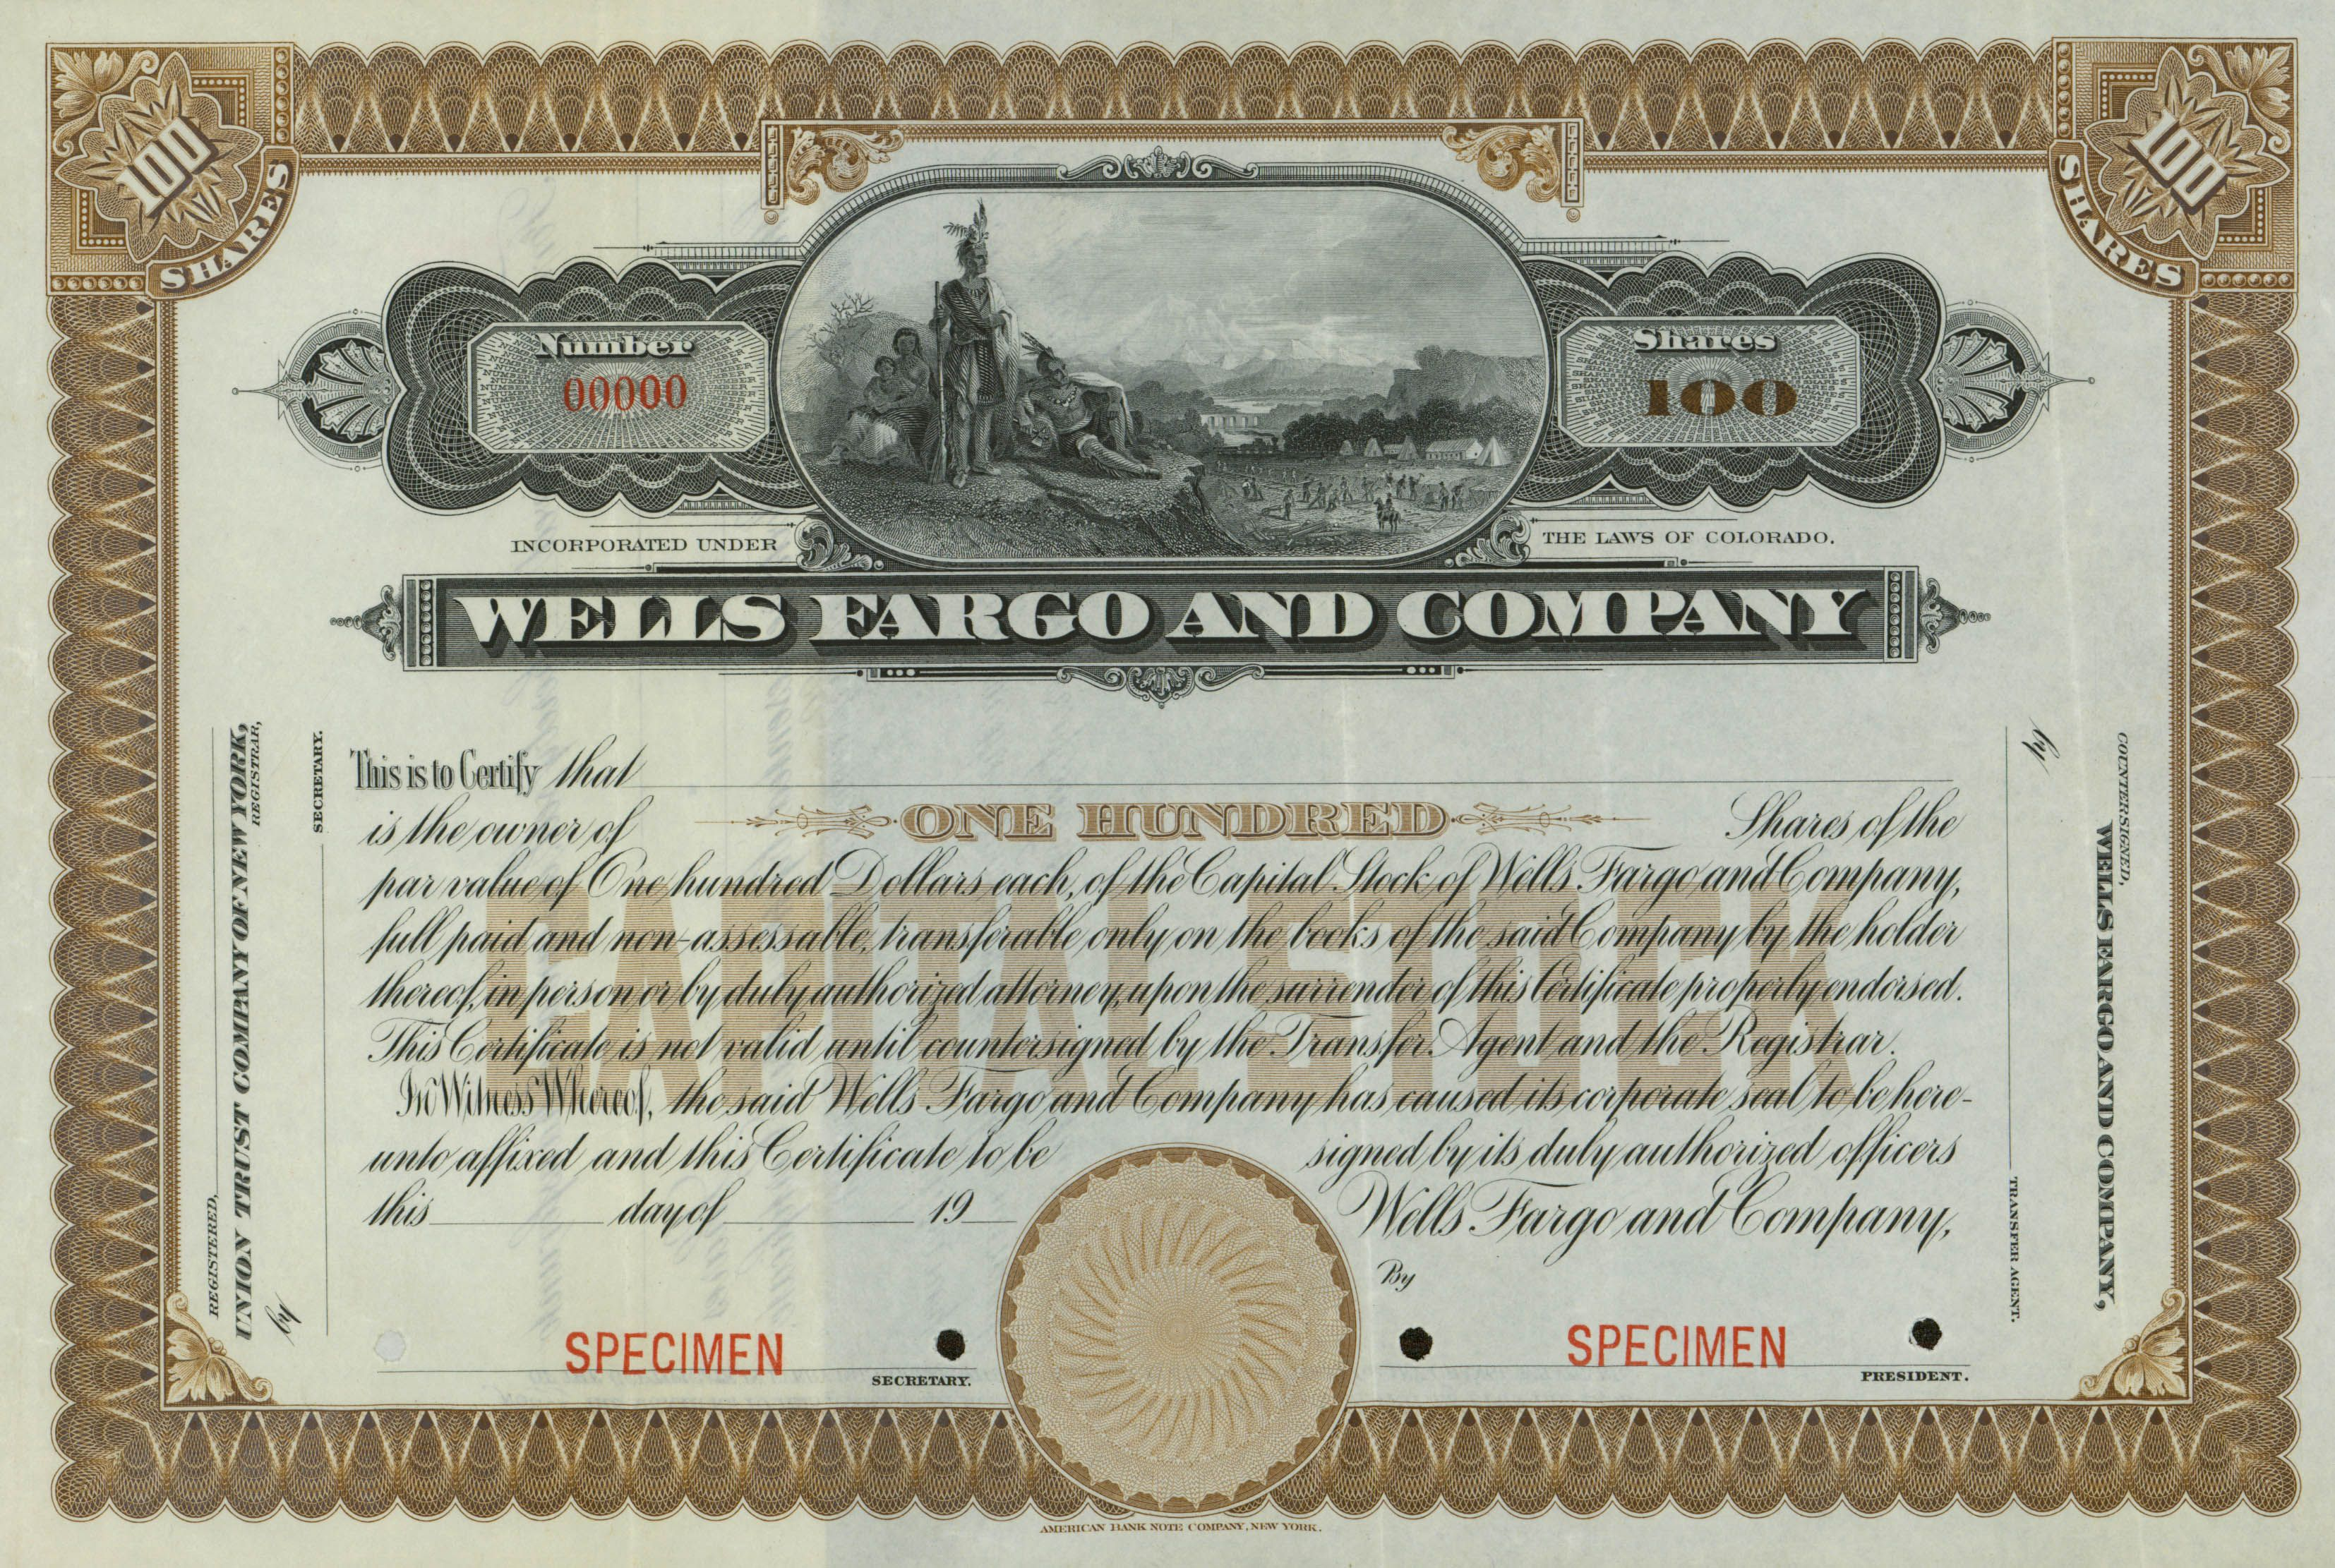 Wells Fargo And Company Stock Certificate 1910 Stock Certificates Stocks And Bonds The Motley Fool